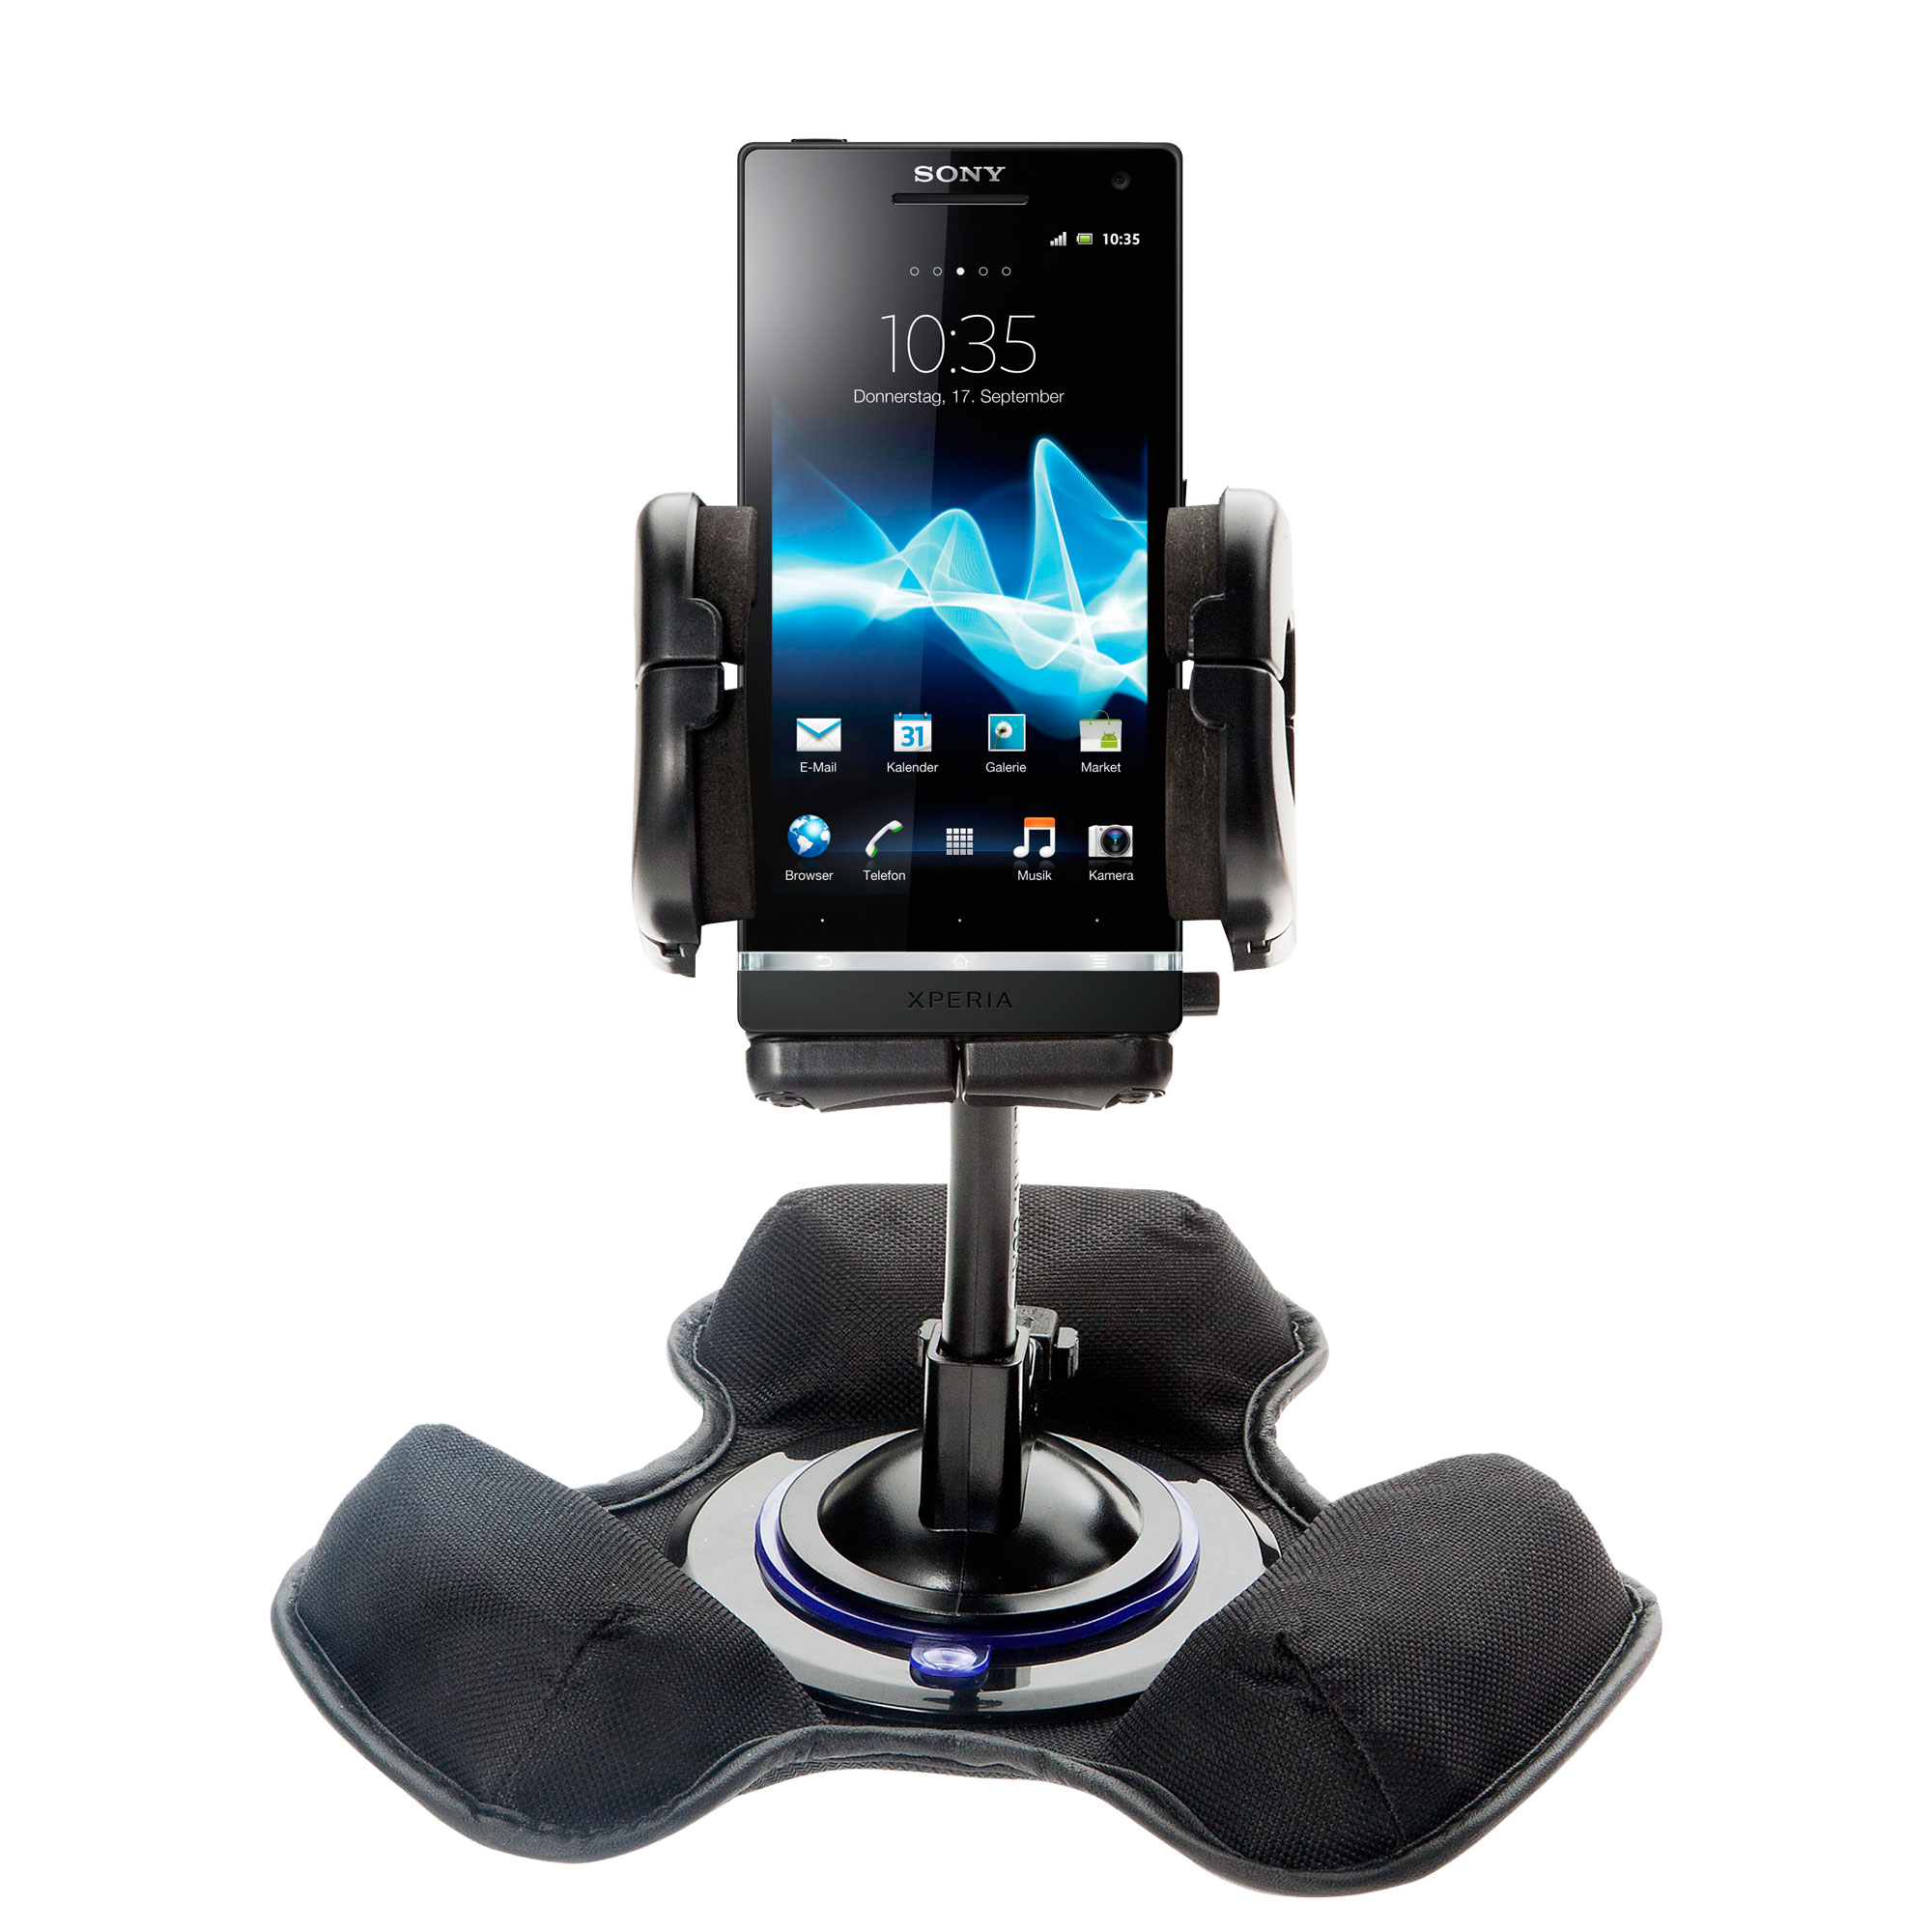 Dash and Windshield Holder compatible with the Sony Ericsson Xperia S